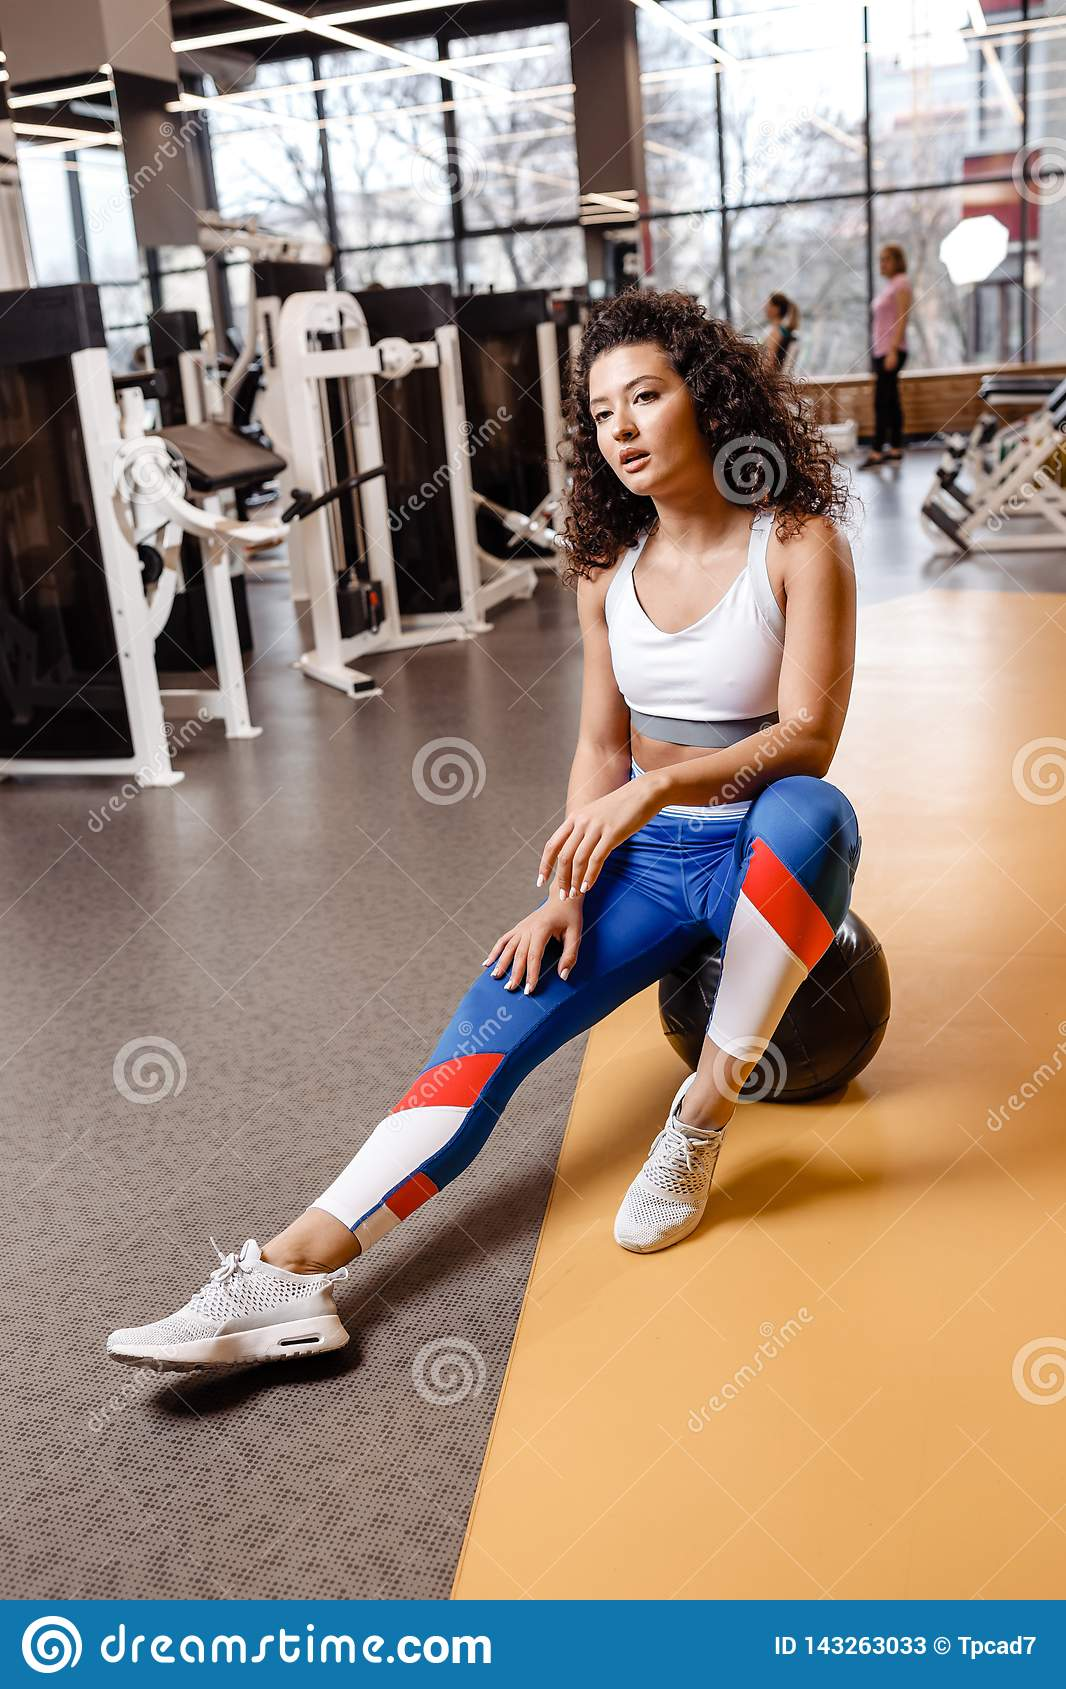 Slim girl with dark curly hair dressed in a sportswear is sitting on the fitness ball in the modern gym with big window